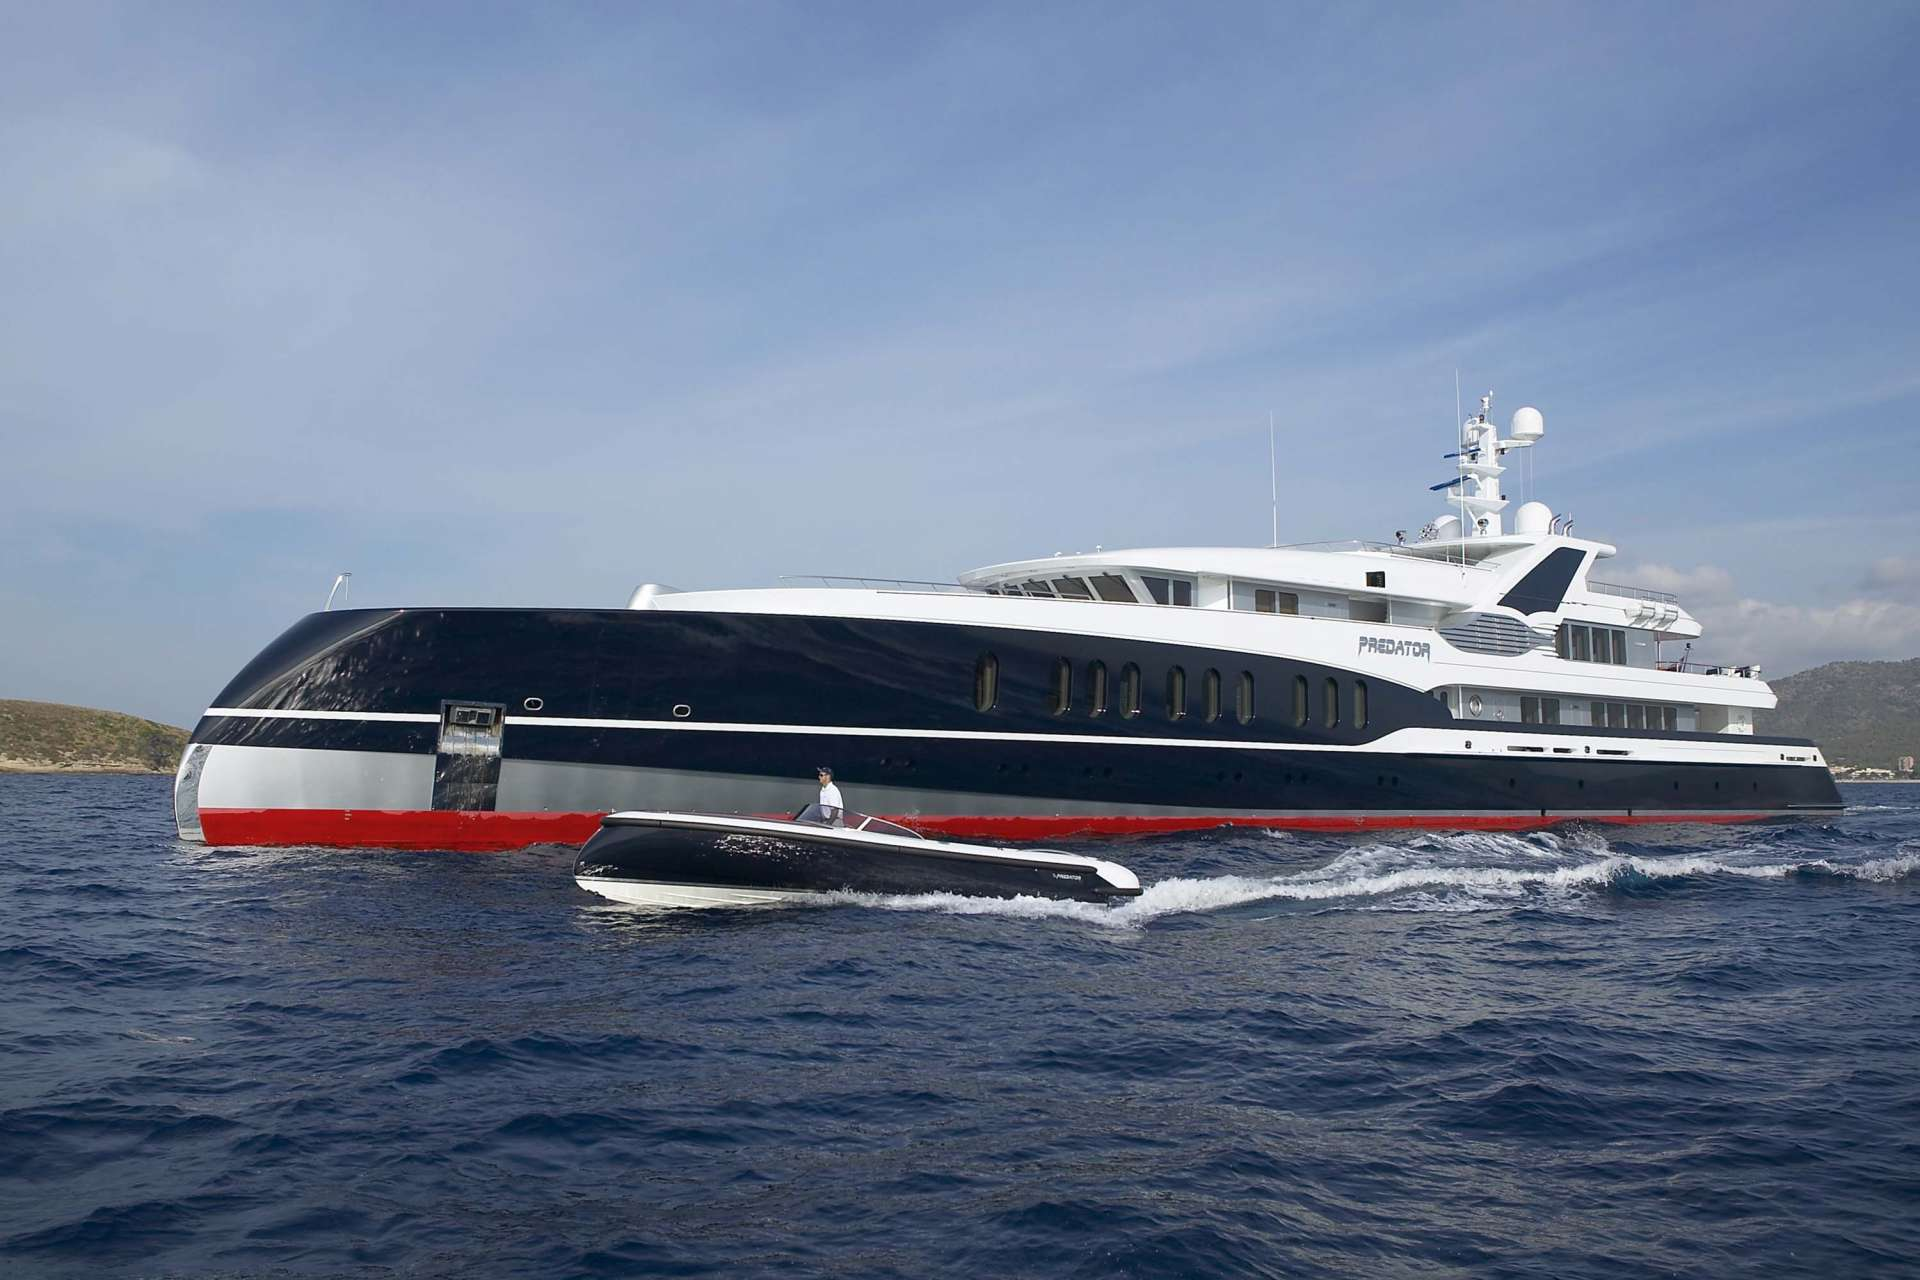 Predator Feadship Royal Dutch Shipyards